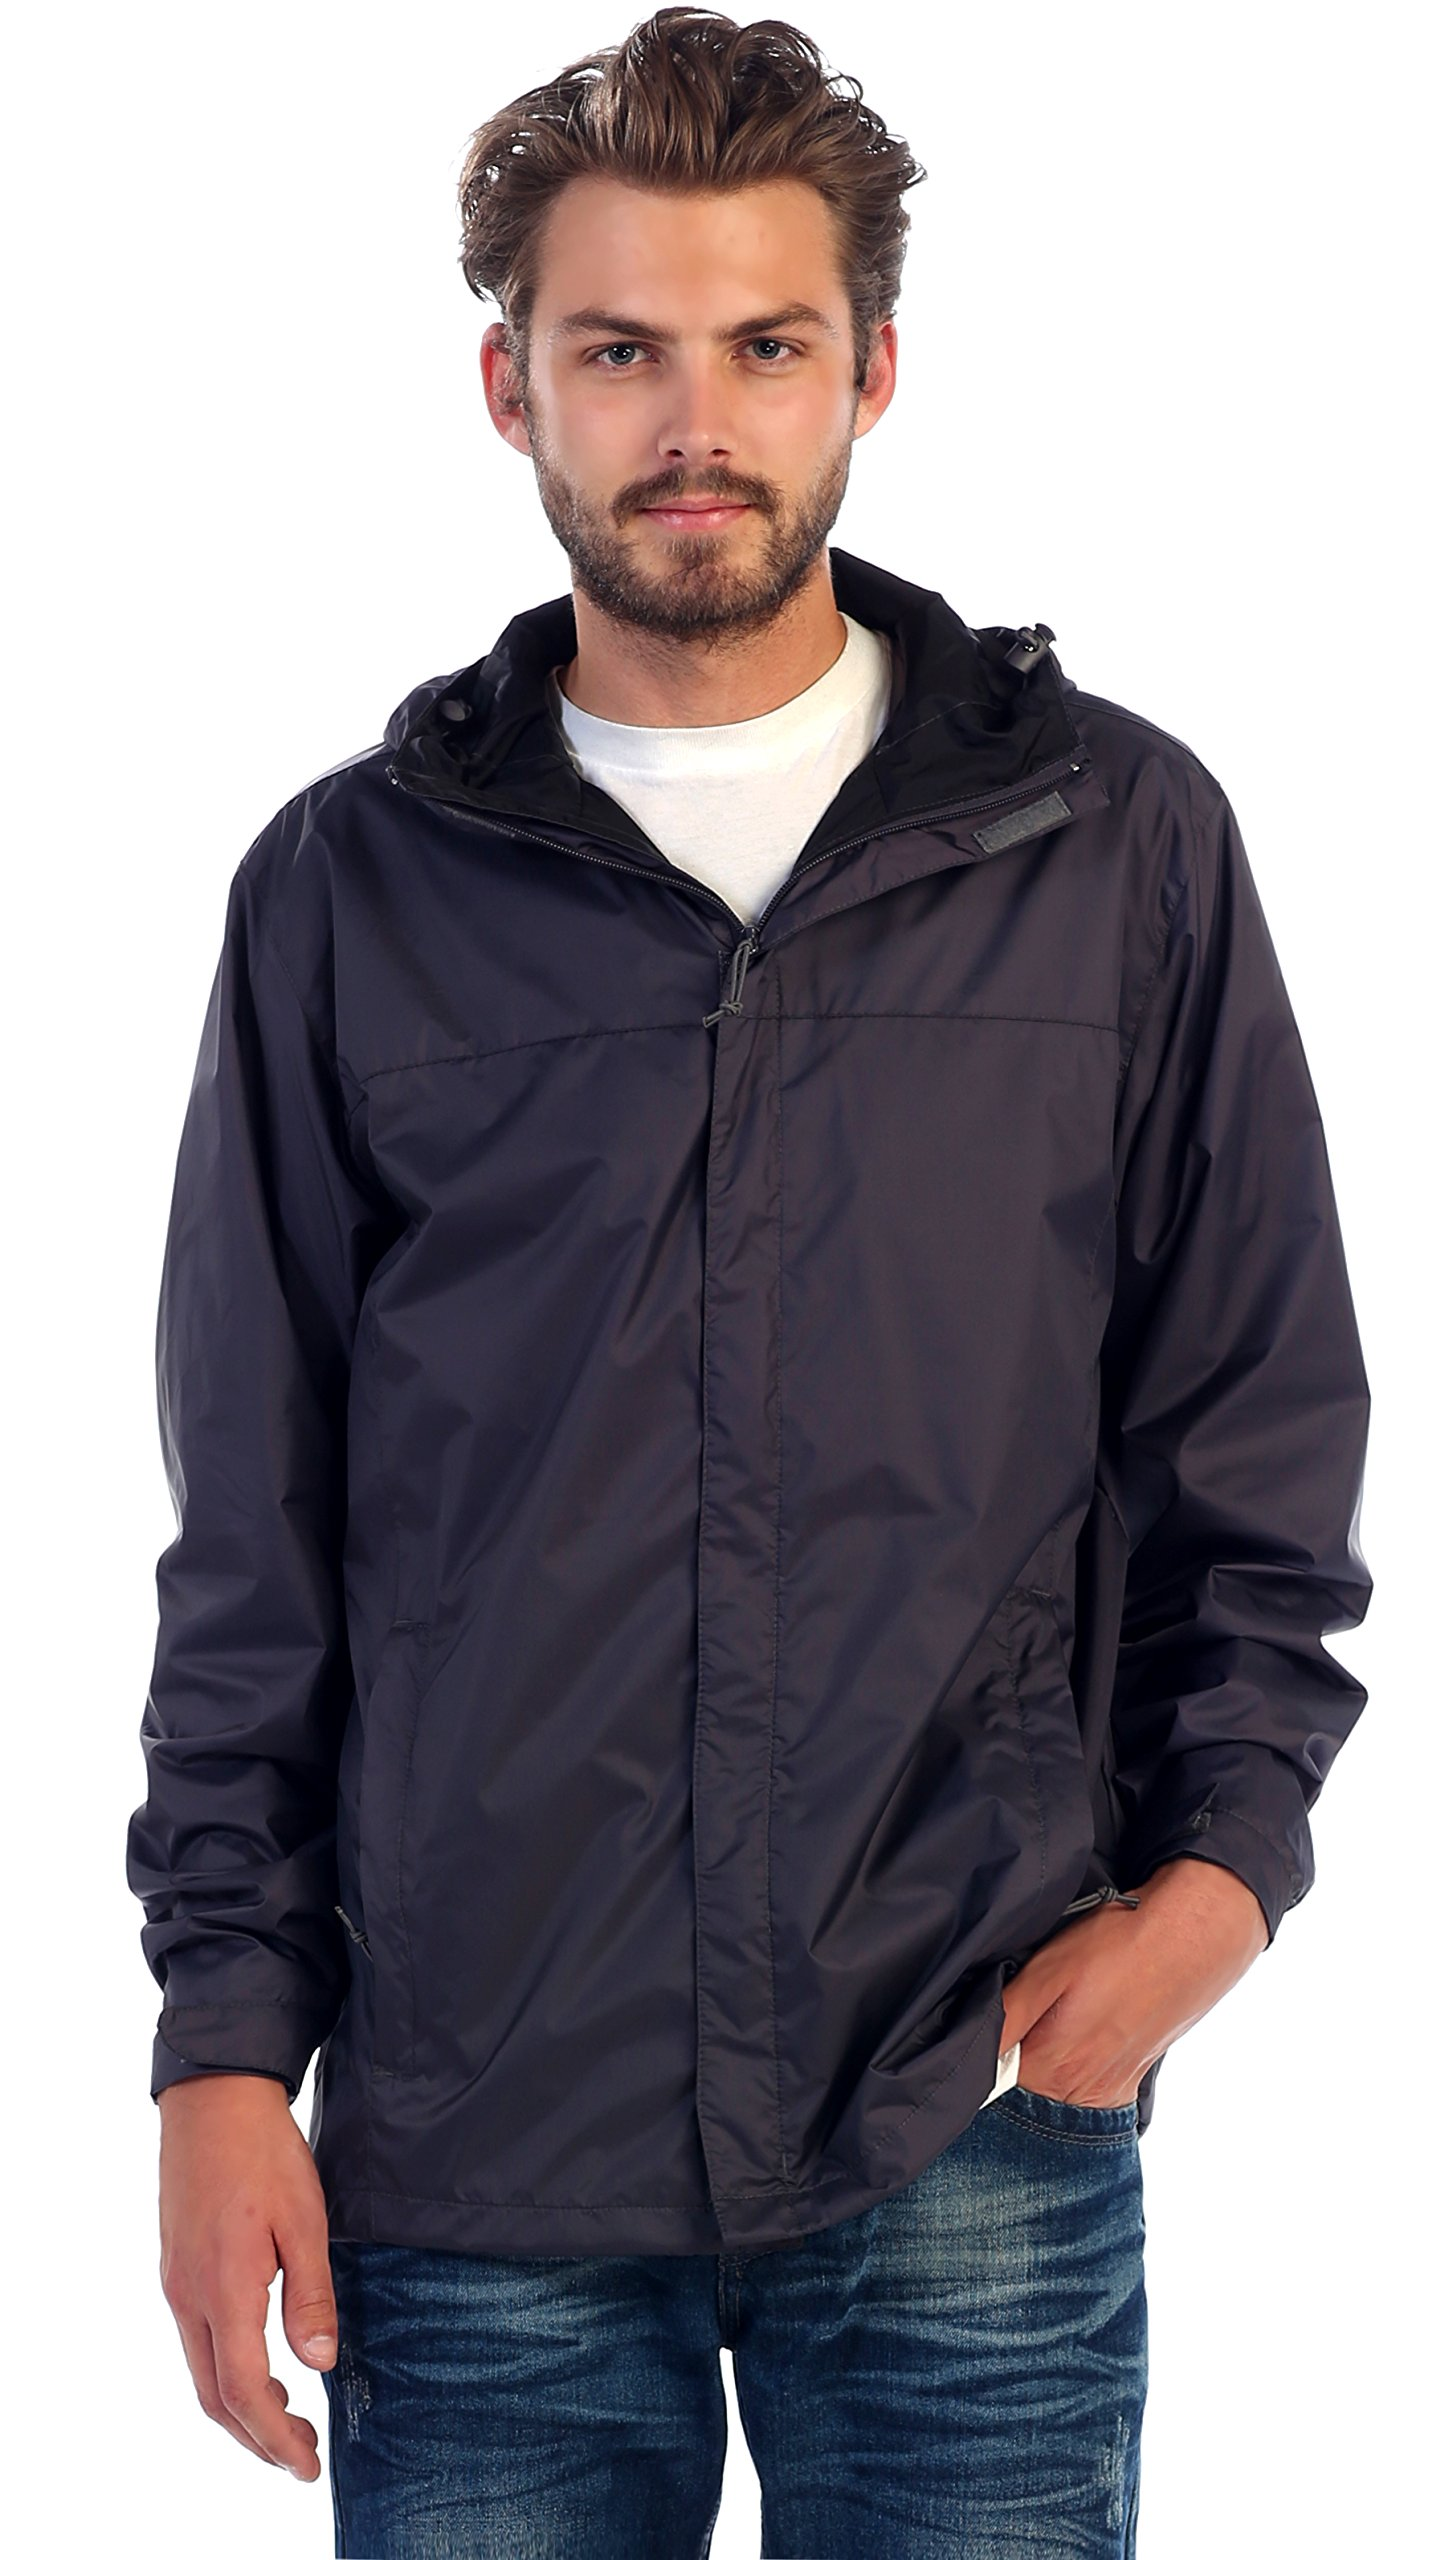 Gioberti Men's Waterproof Rain Jacket, Charcoal, XL